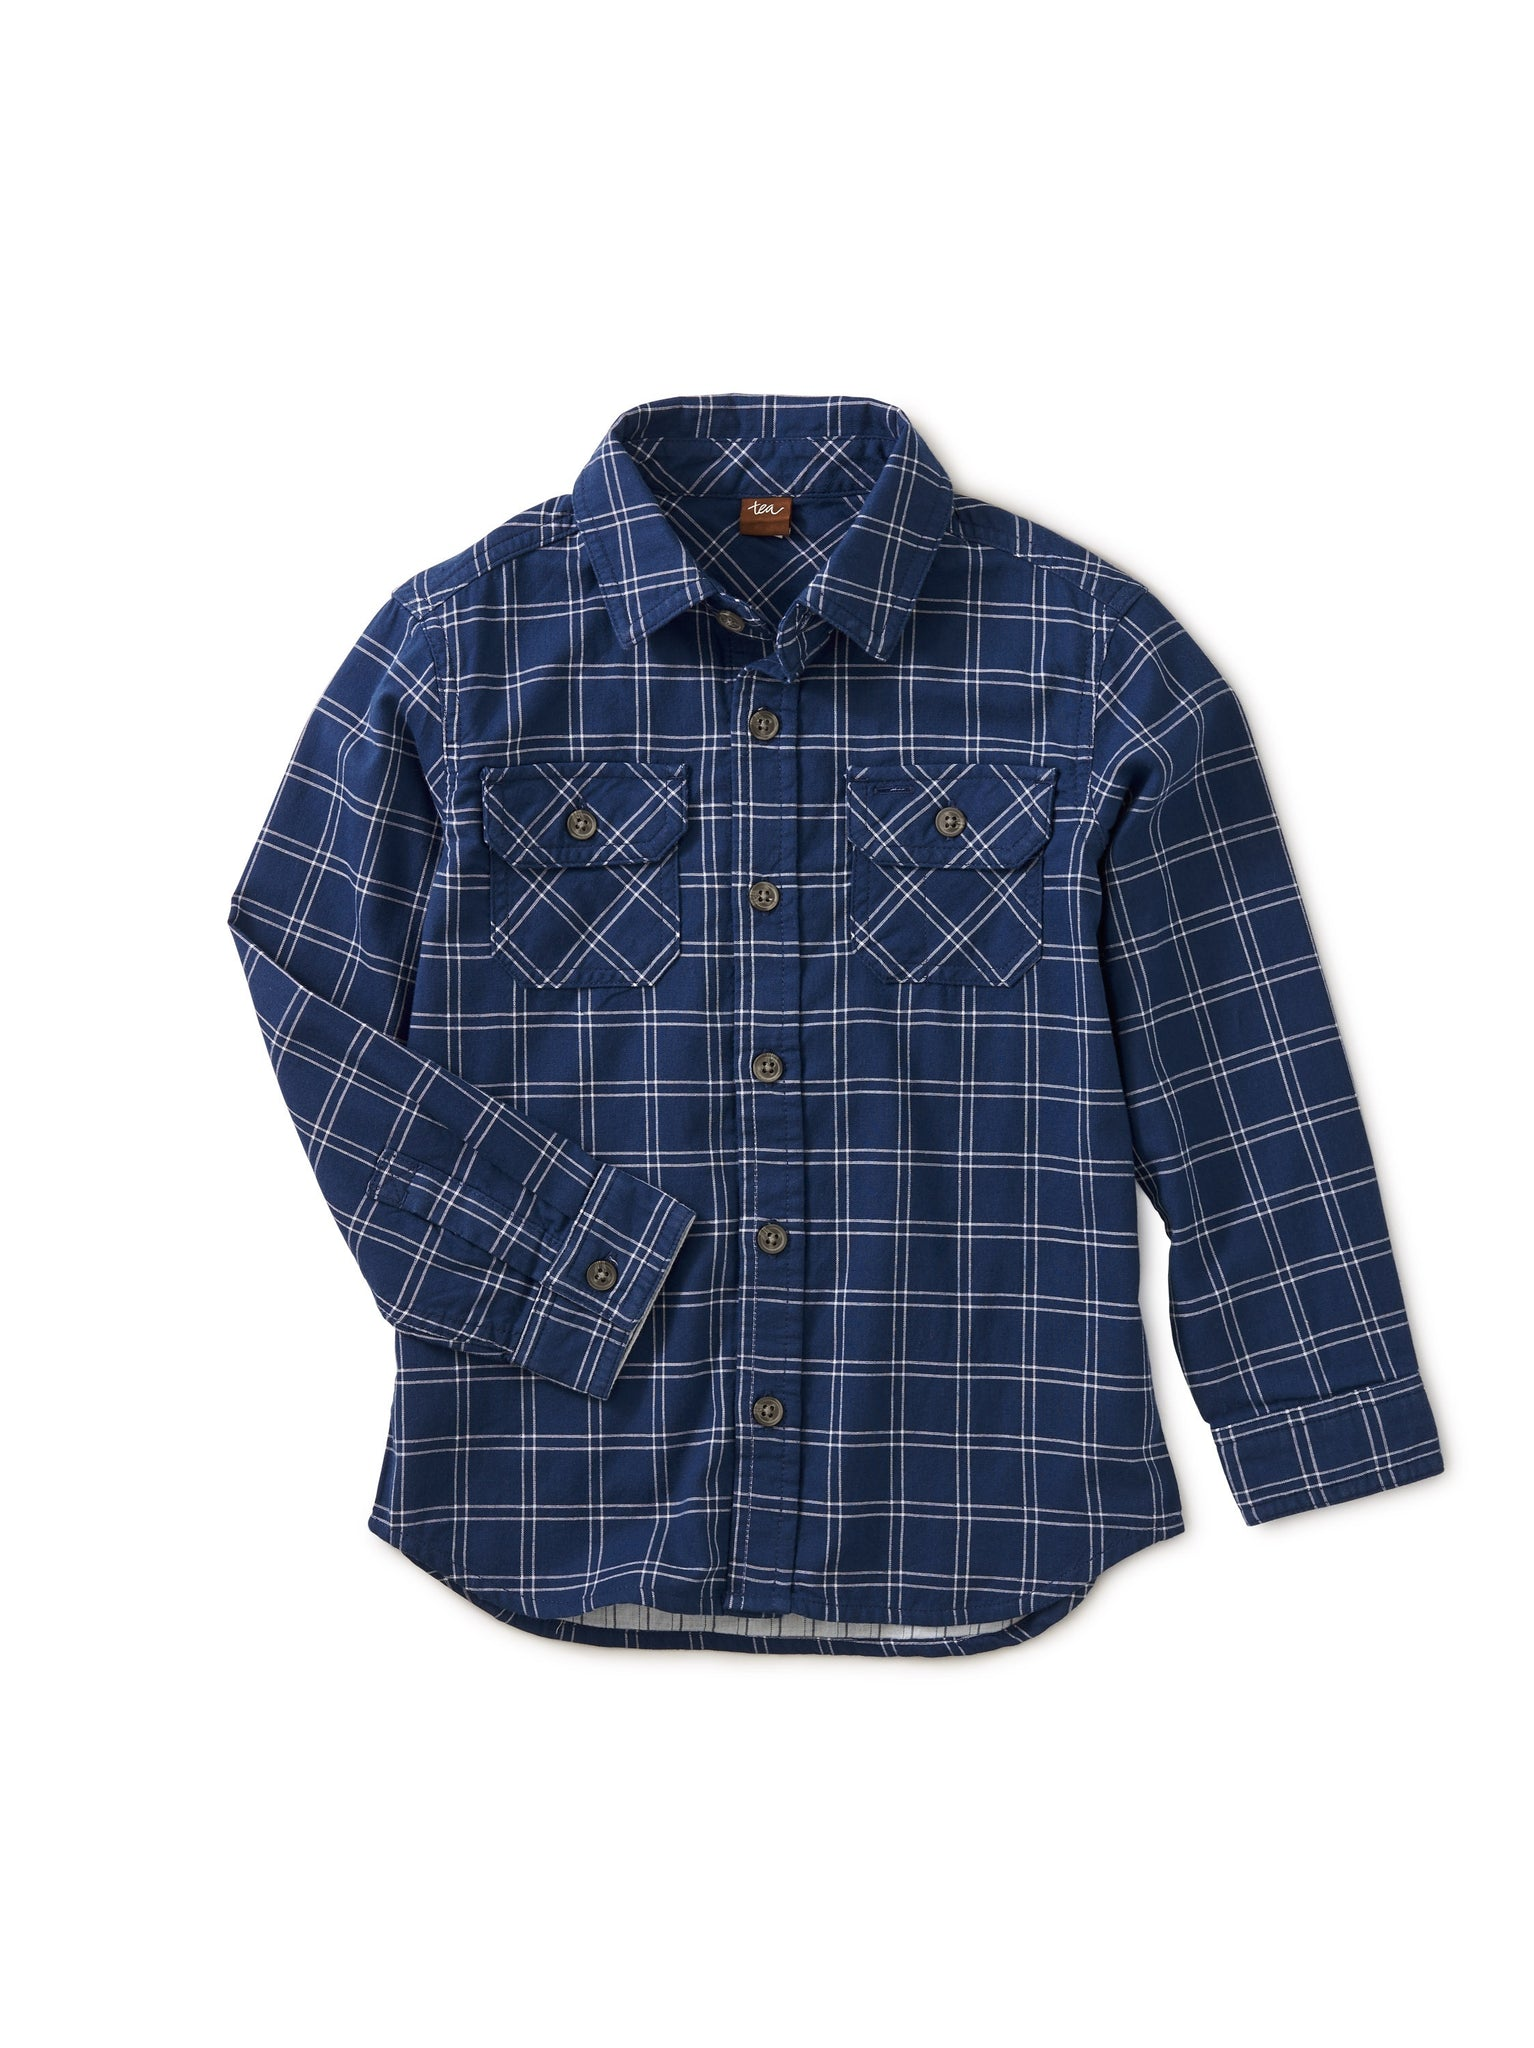 Plaid Button Up/Annapurna Double Weave